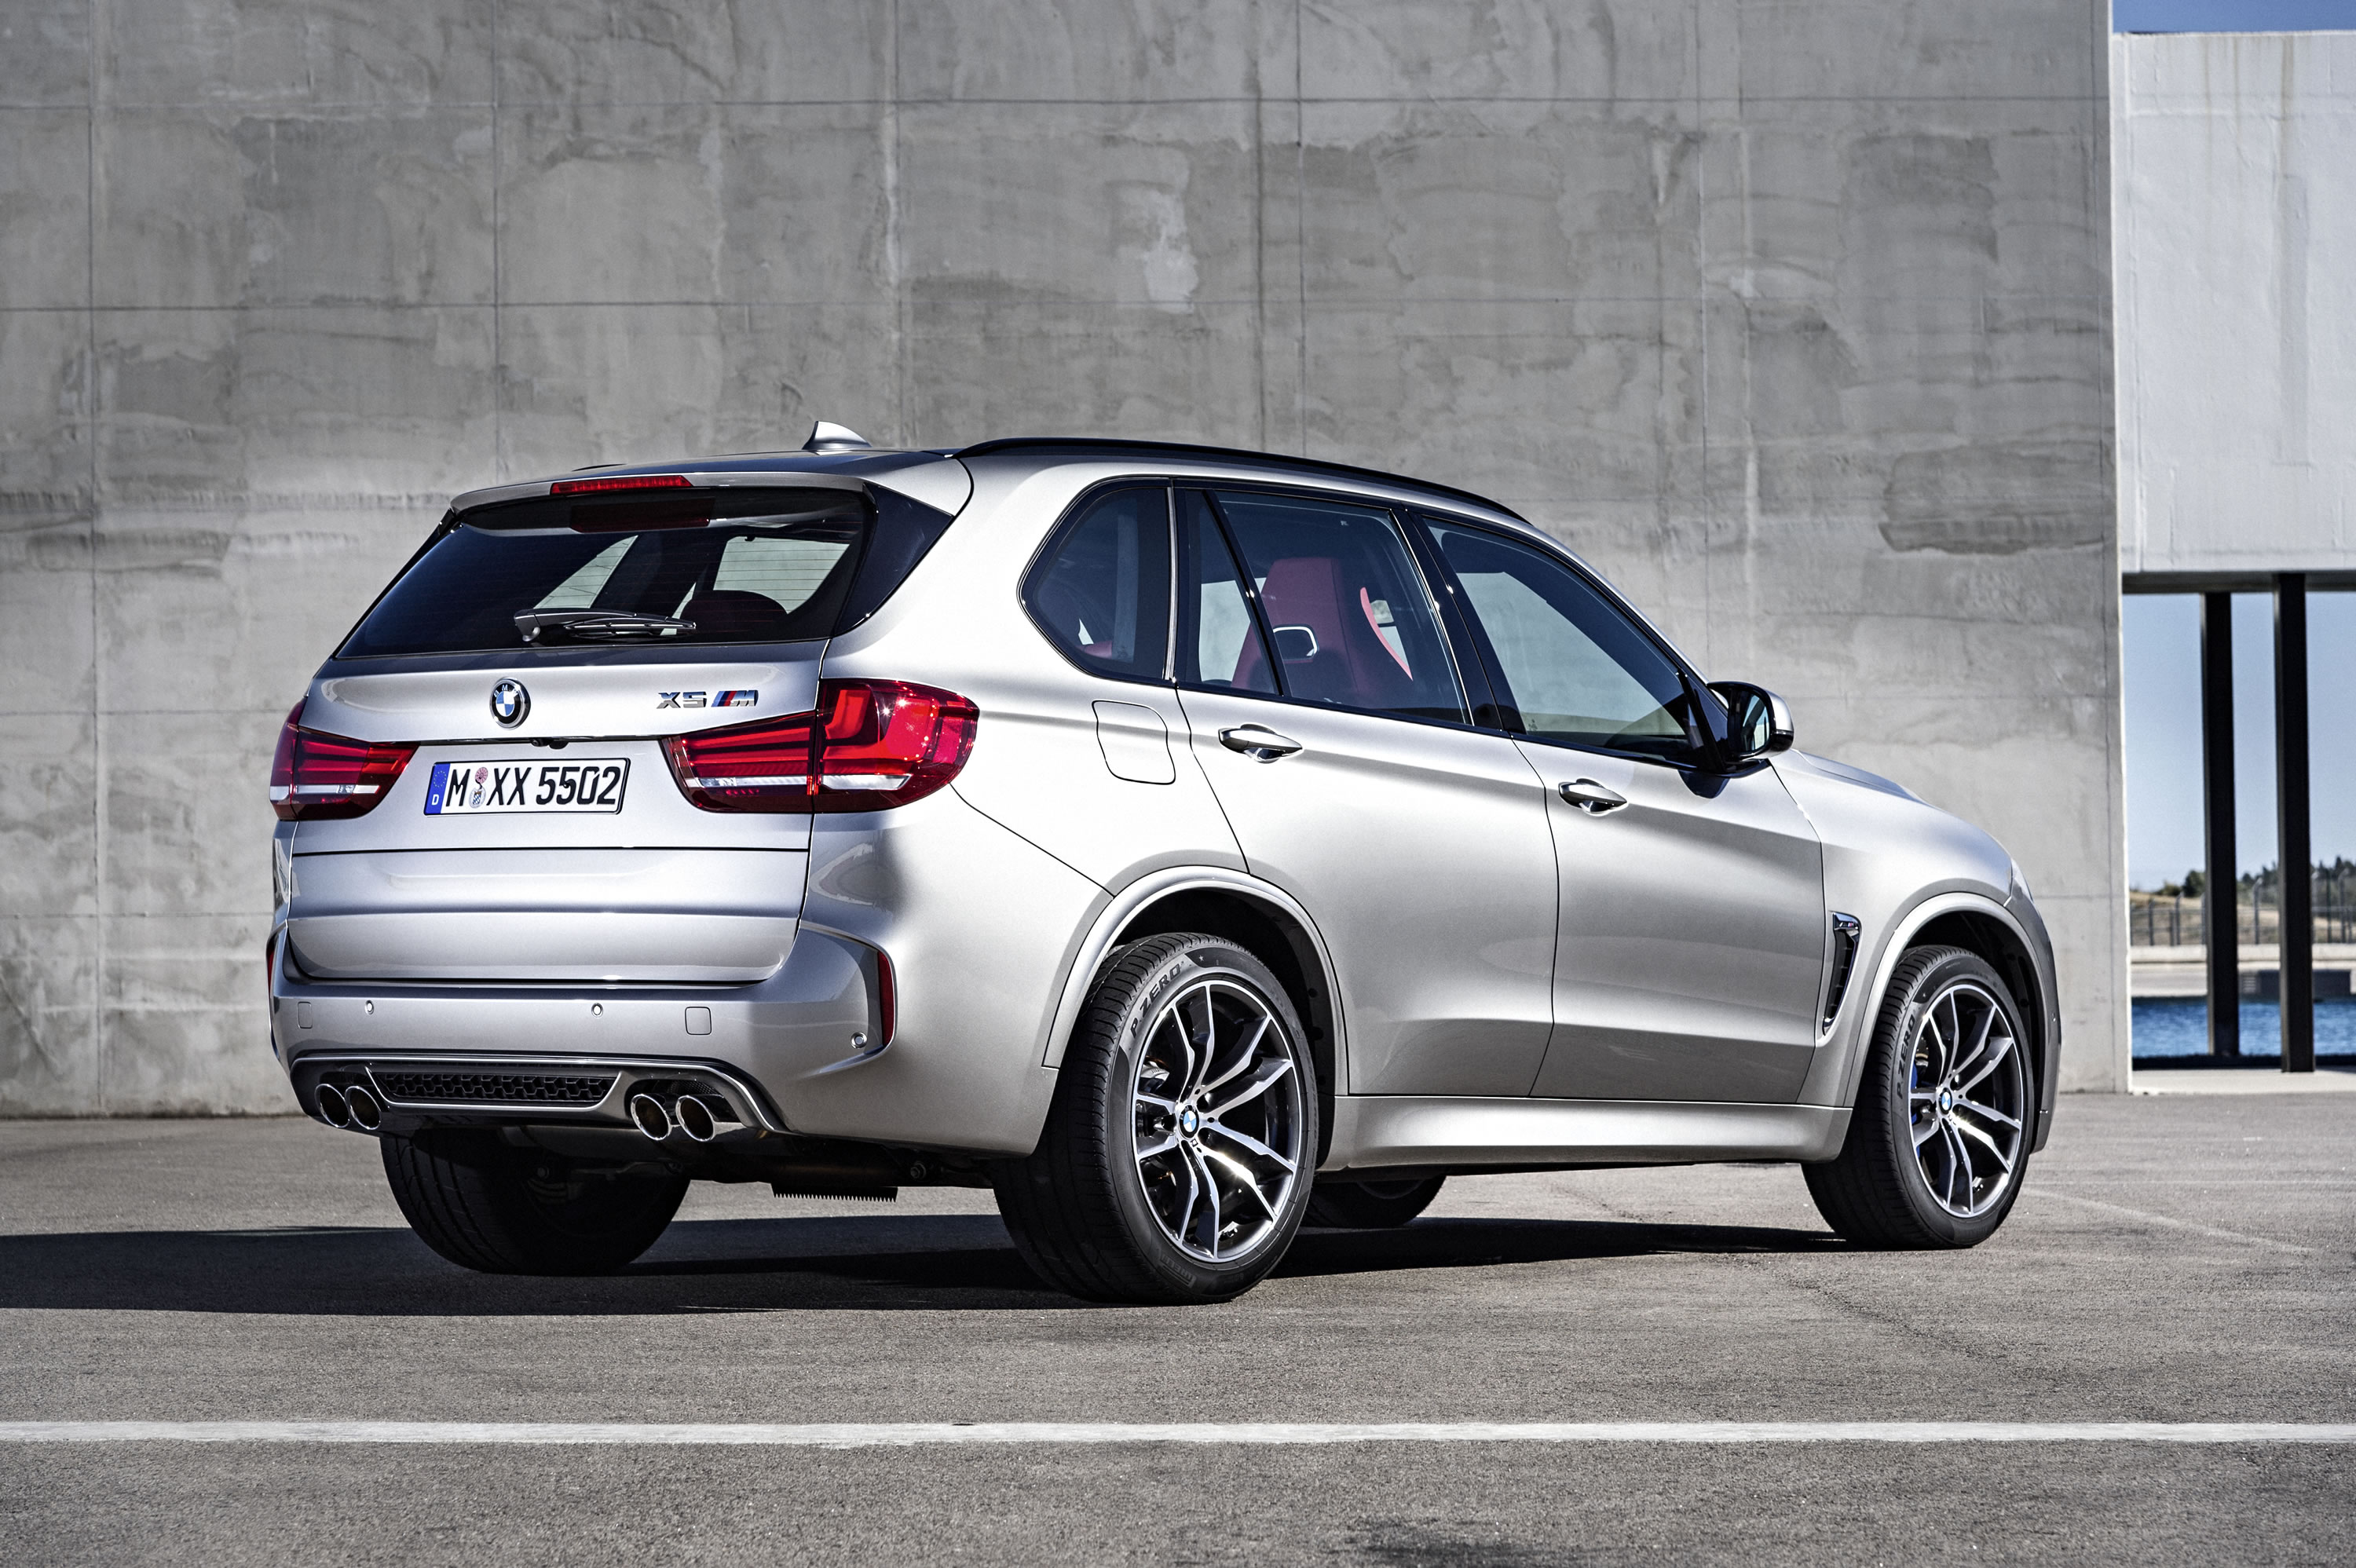 2015 bmw x5 m photos specs and review rs. Black Bedroom Furniture Sets. Home Design Ideas